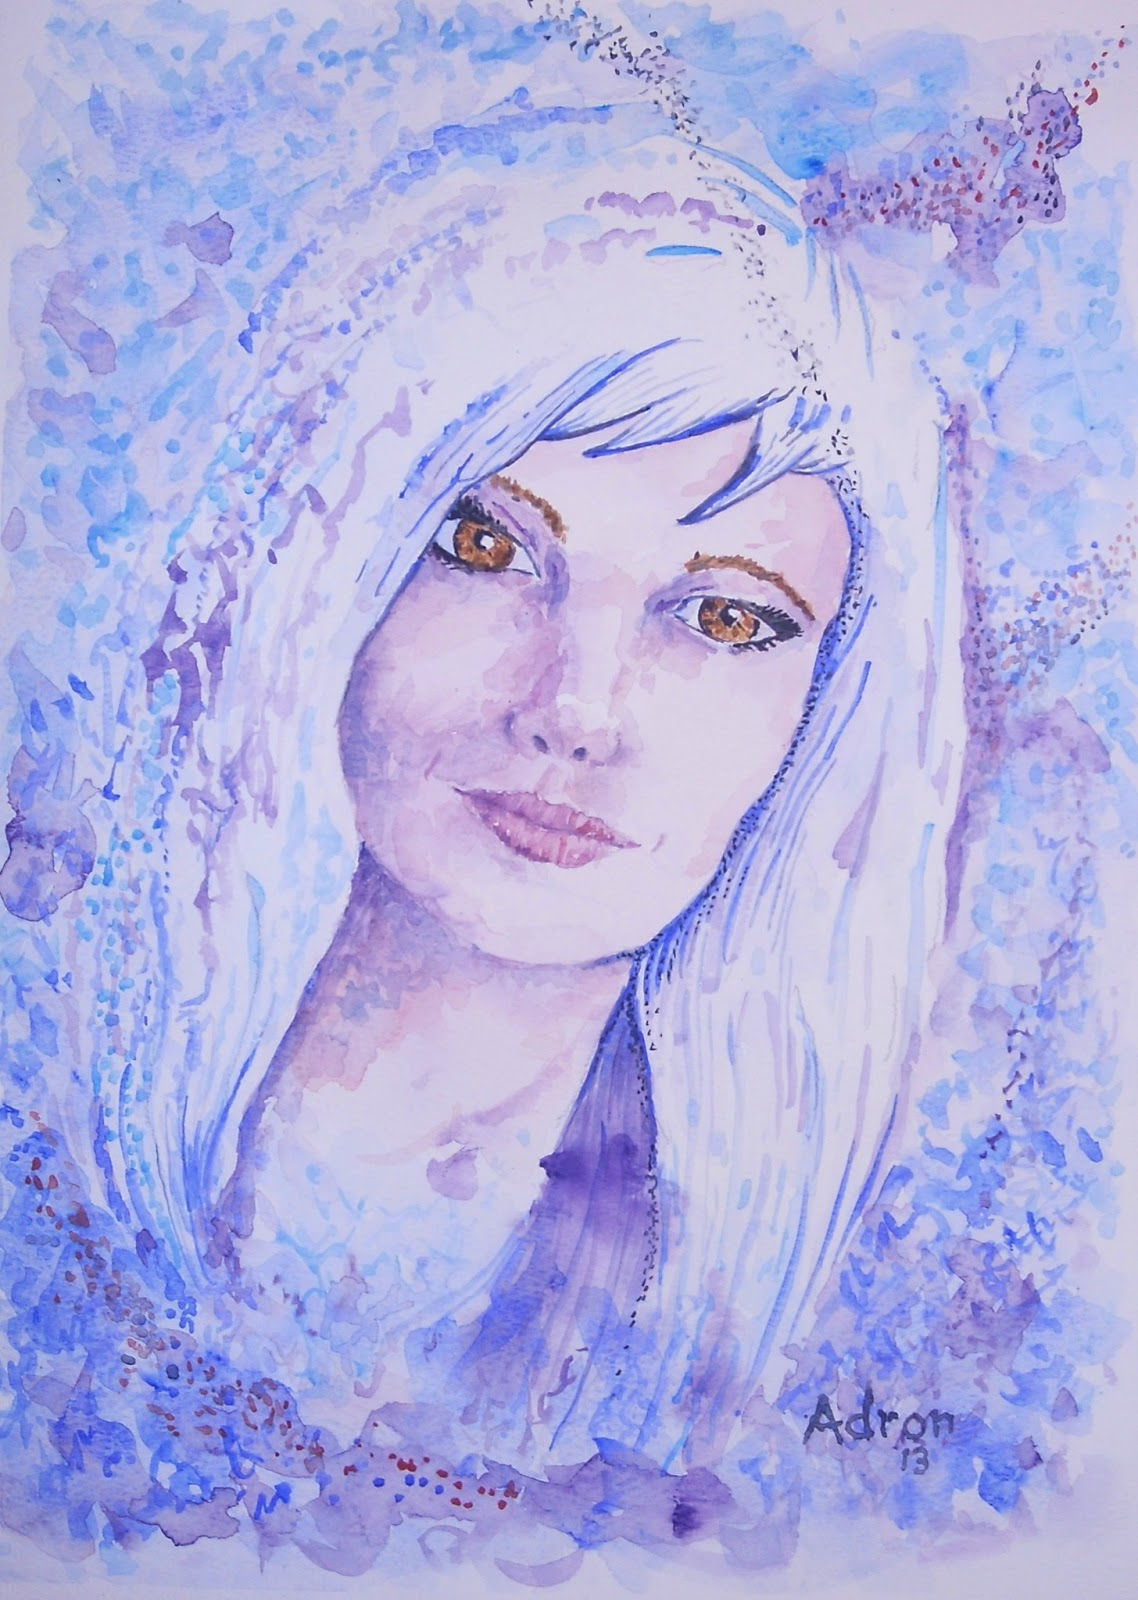 Artist Adron Watercolor Portrait Of Woman With White Hair